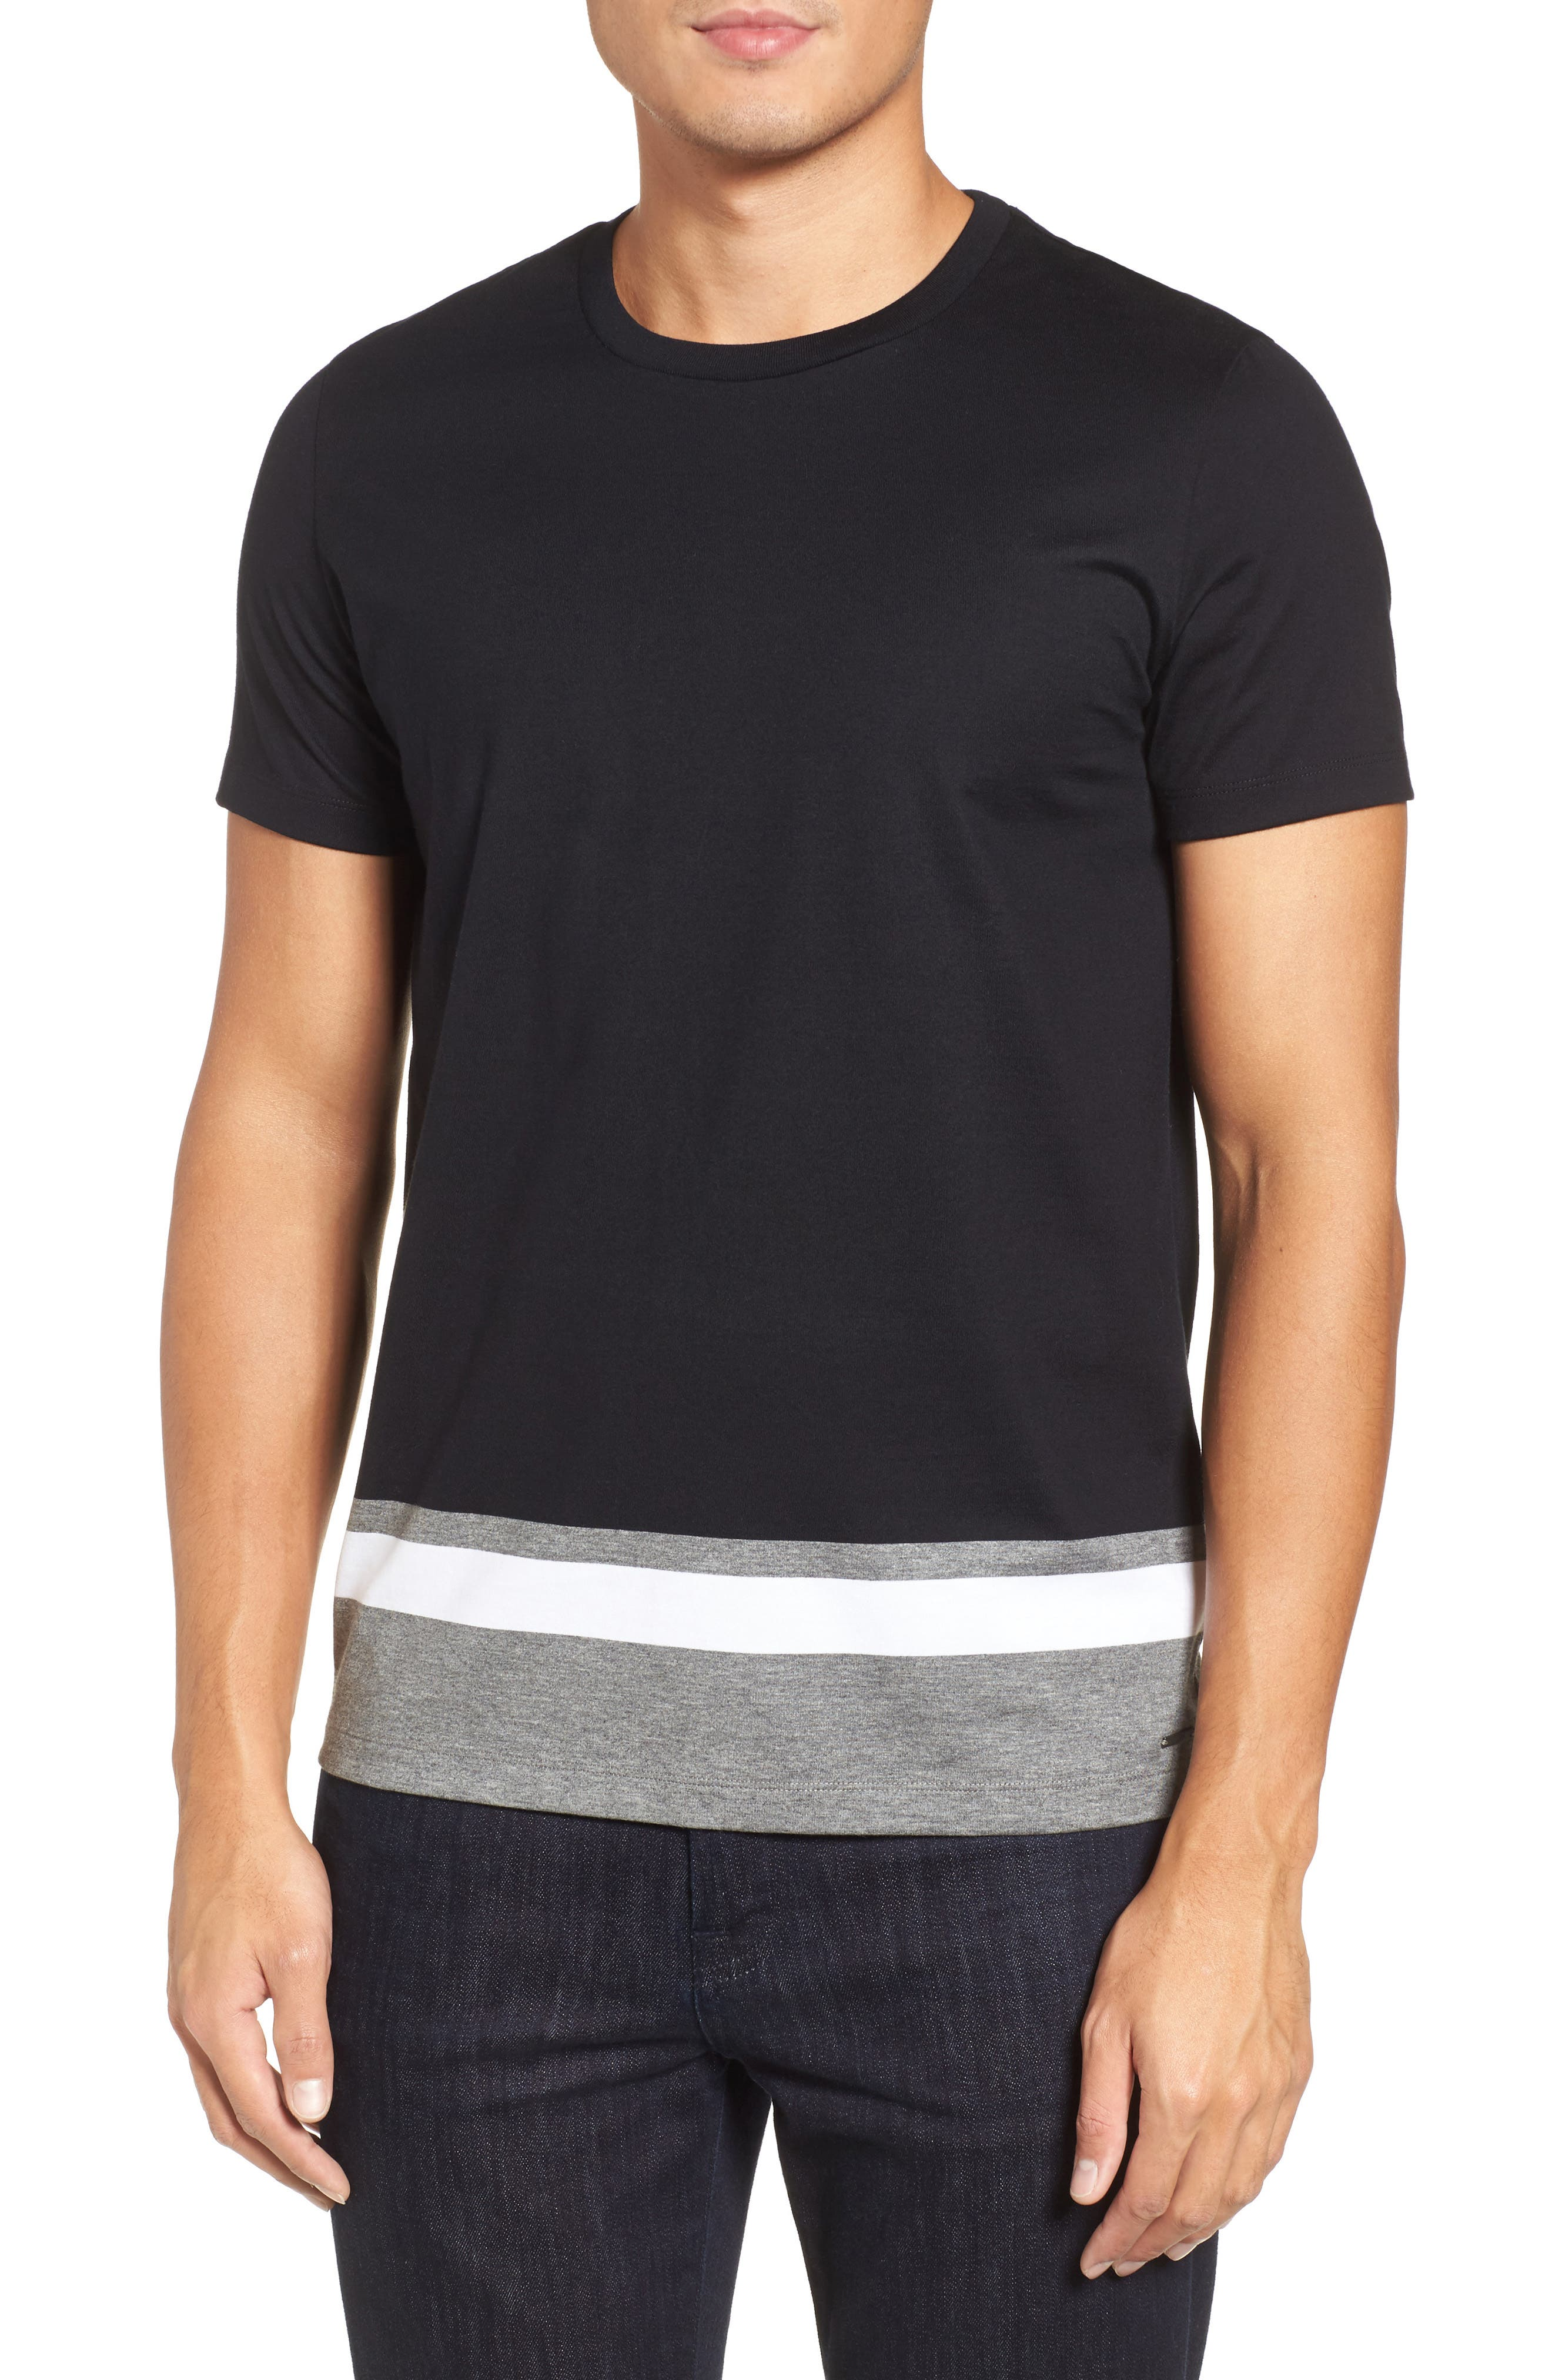 Tiburt Colorblock T-Shirt,                             Main thumbnail 1, color,                             001